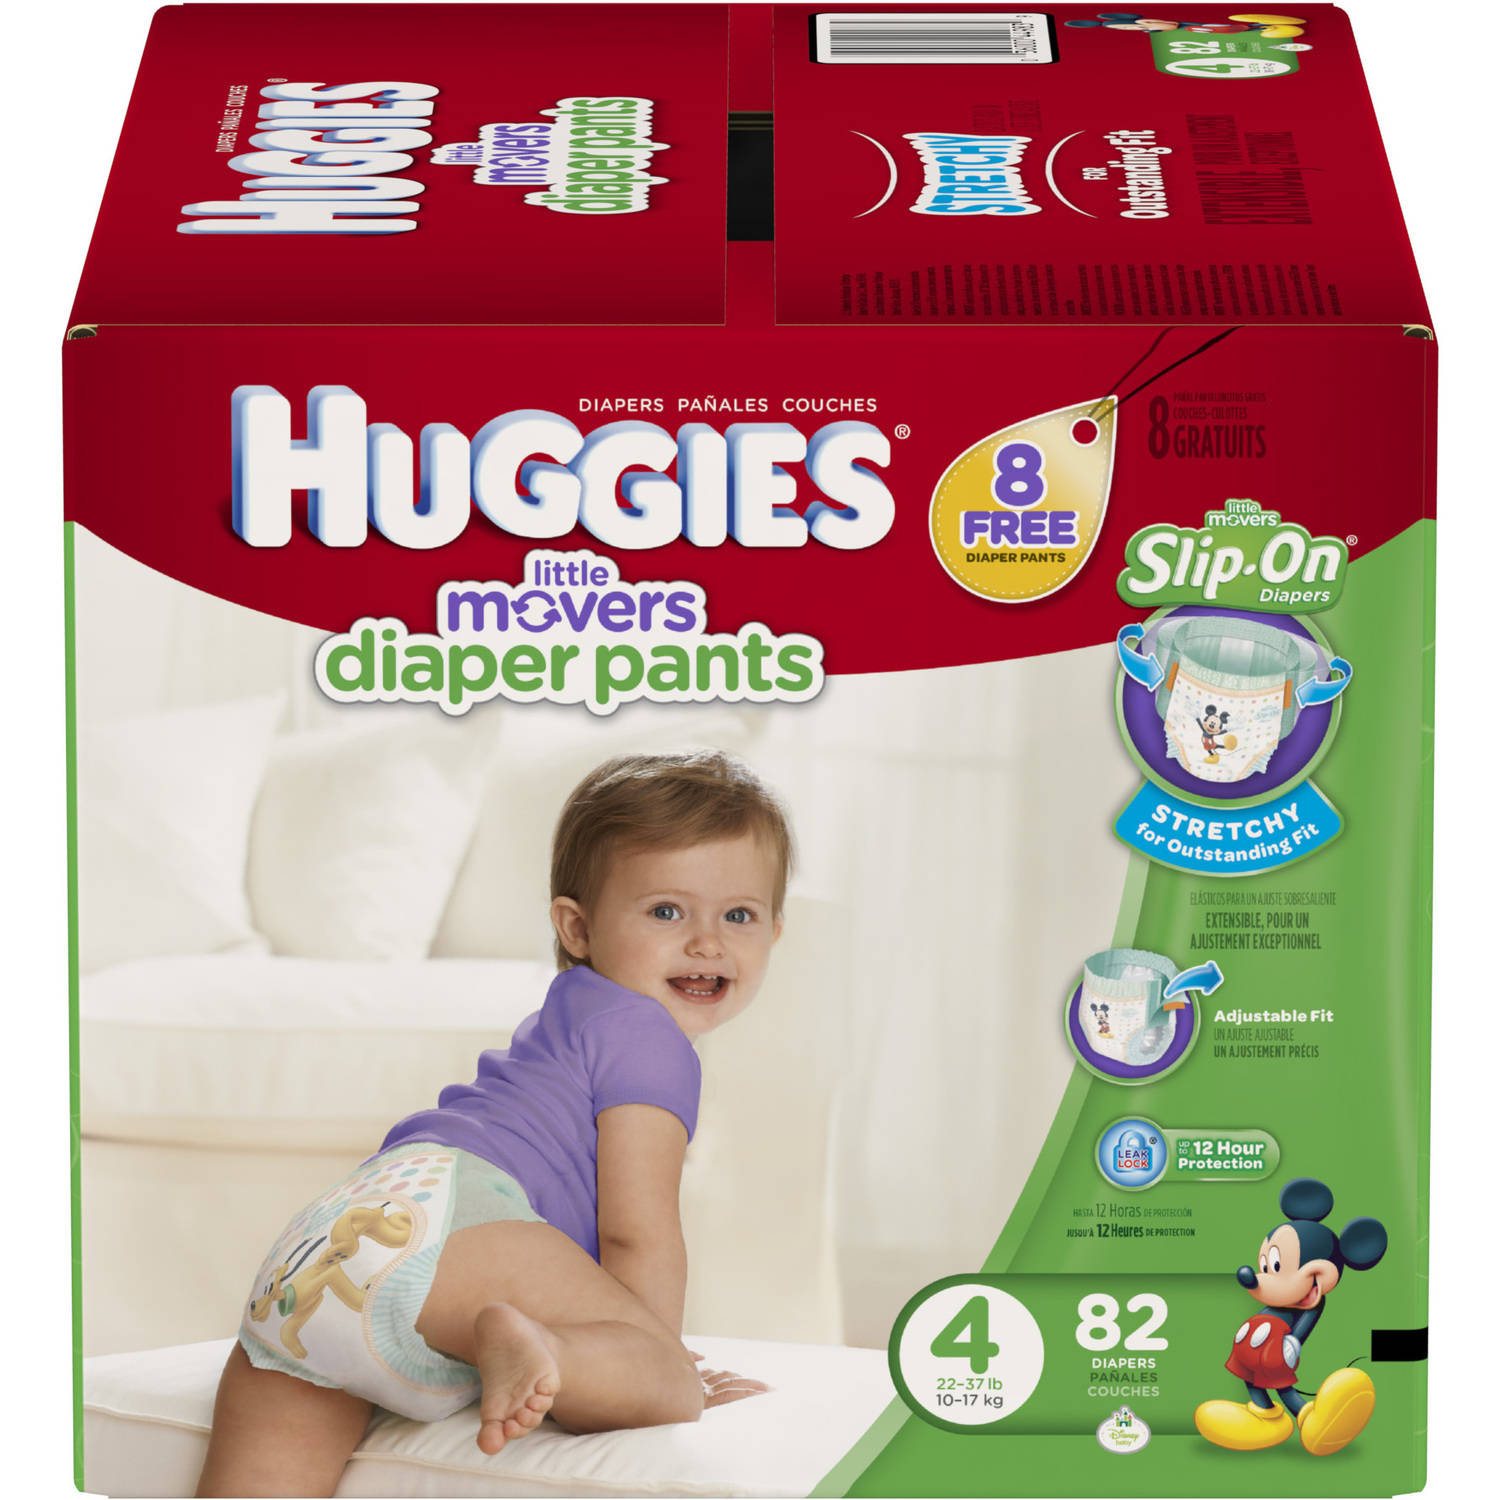 HUGGIES Little Movers Slip-On Diaper Pants, Size 4, 82 Diapers